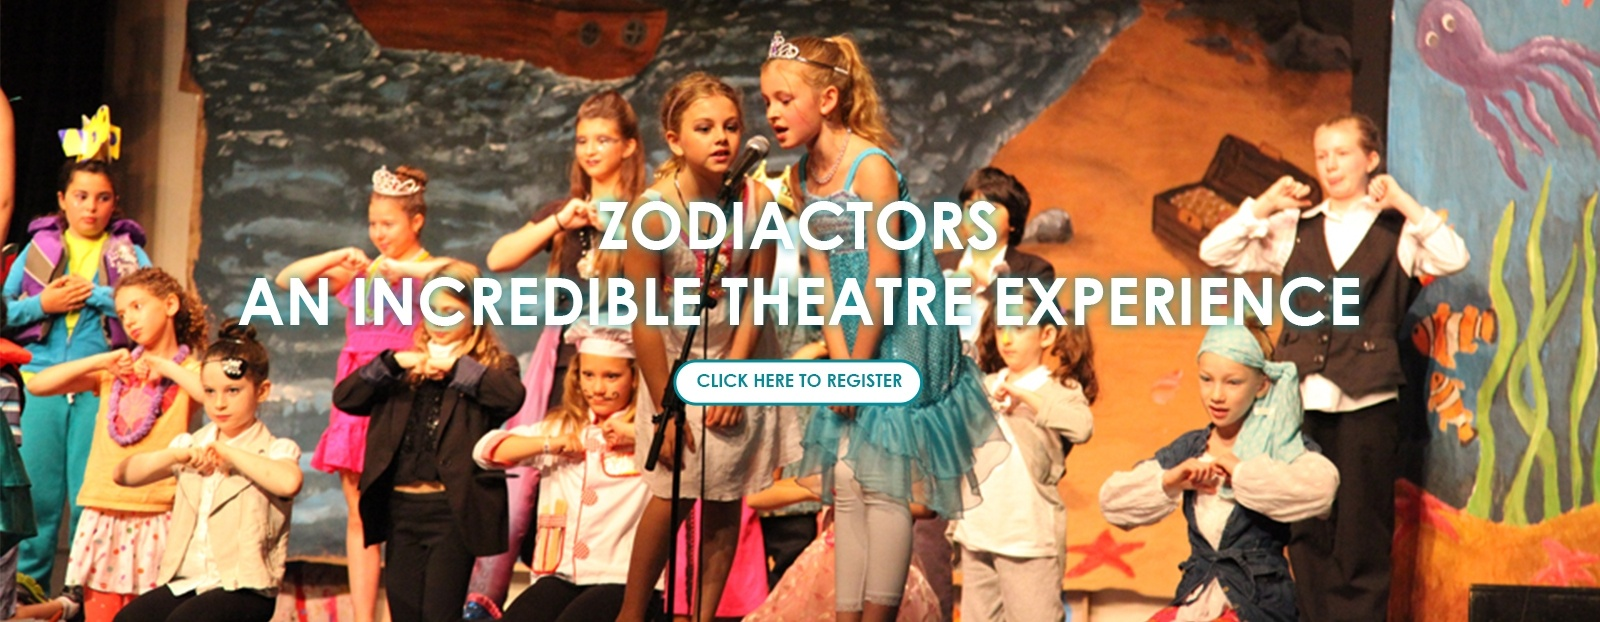 zodiactors theatre arts toronto on